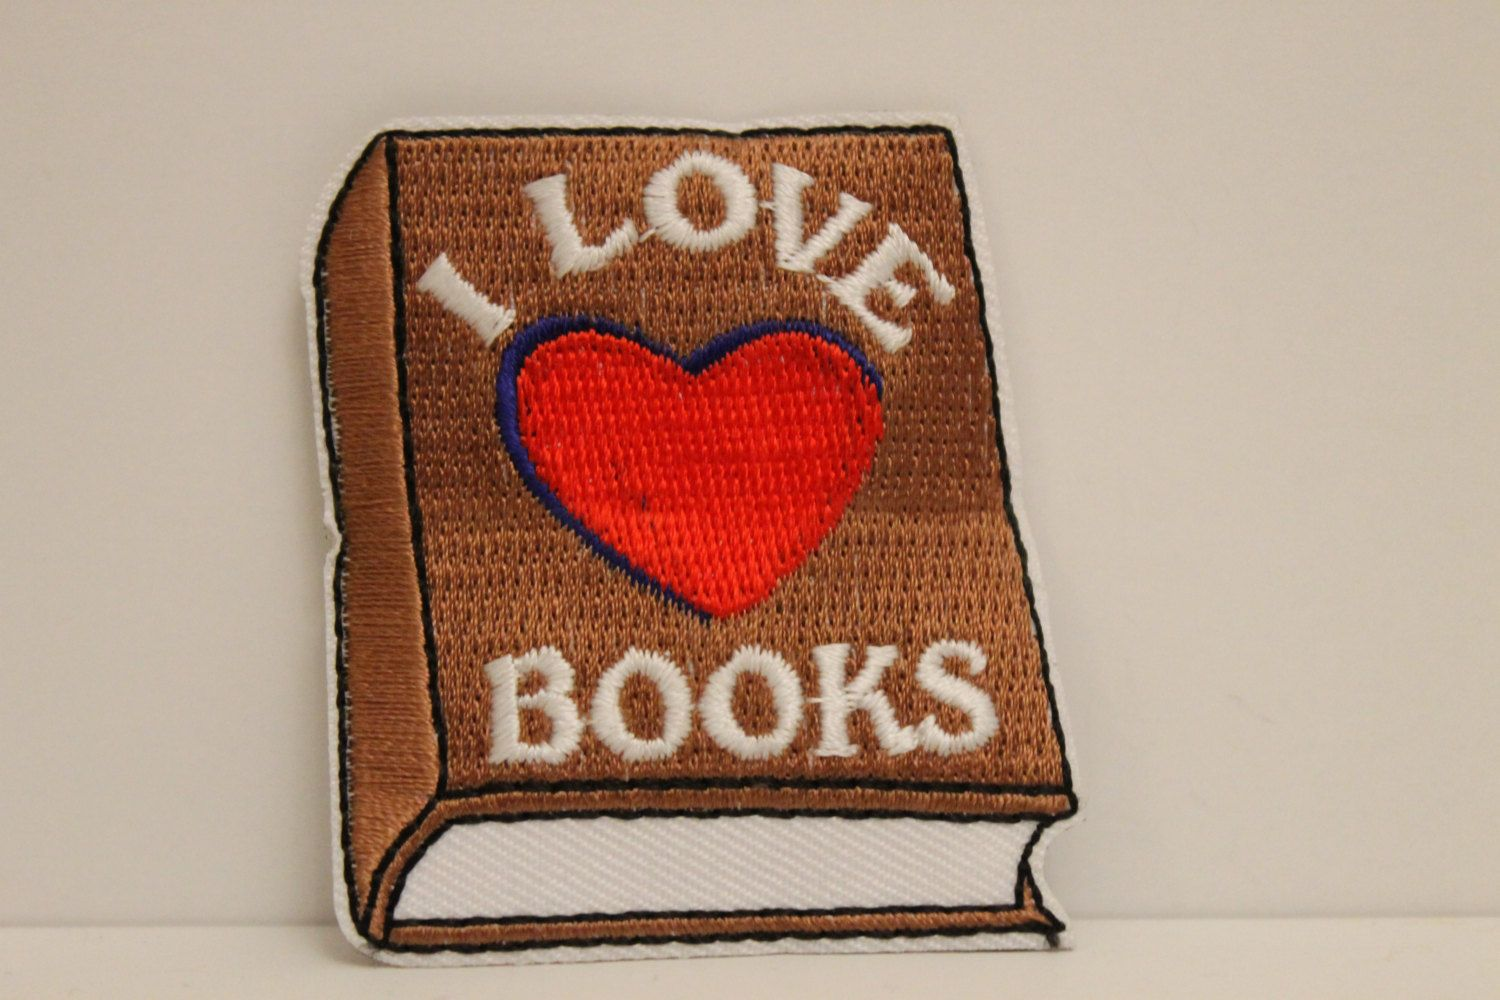 I Love Books Patch (1) - booklover bookworm scout library by GreyguyIndustries on Etsy